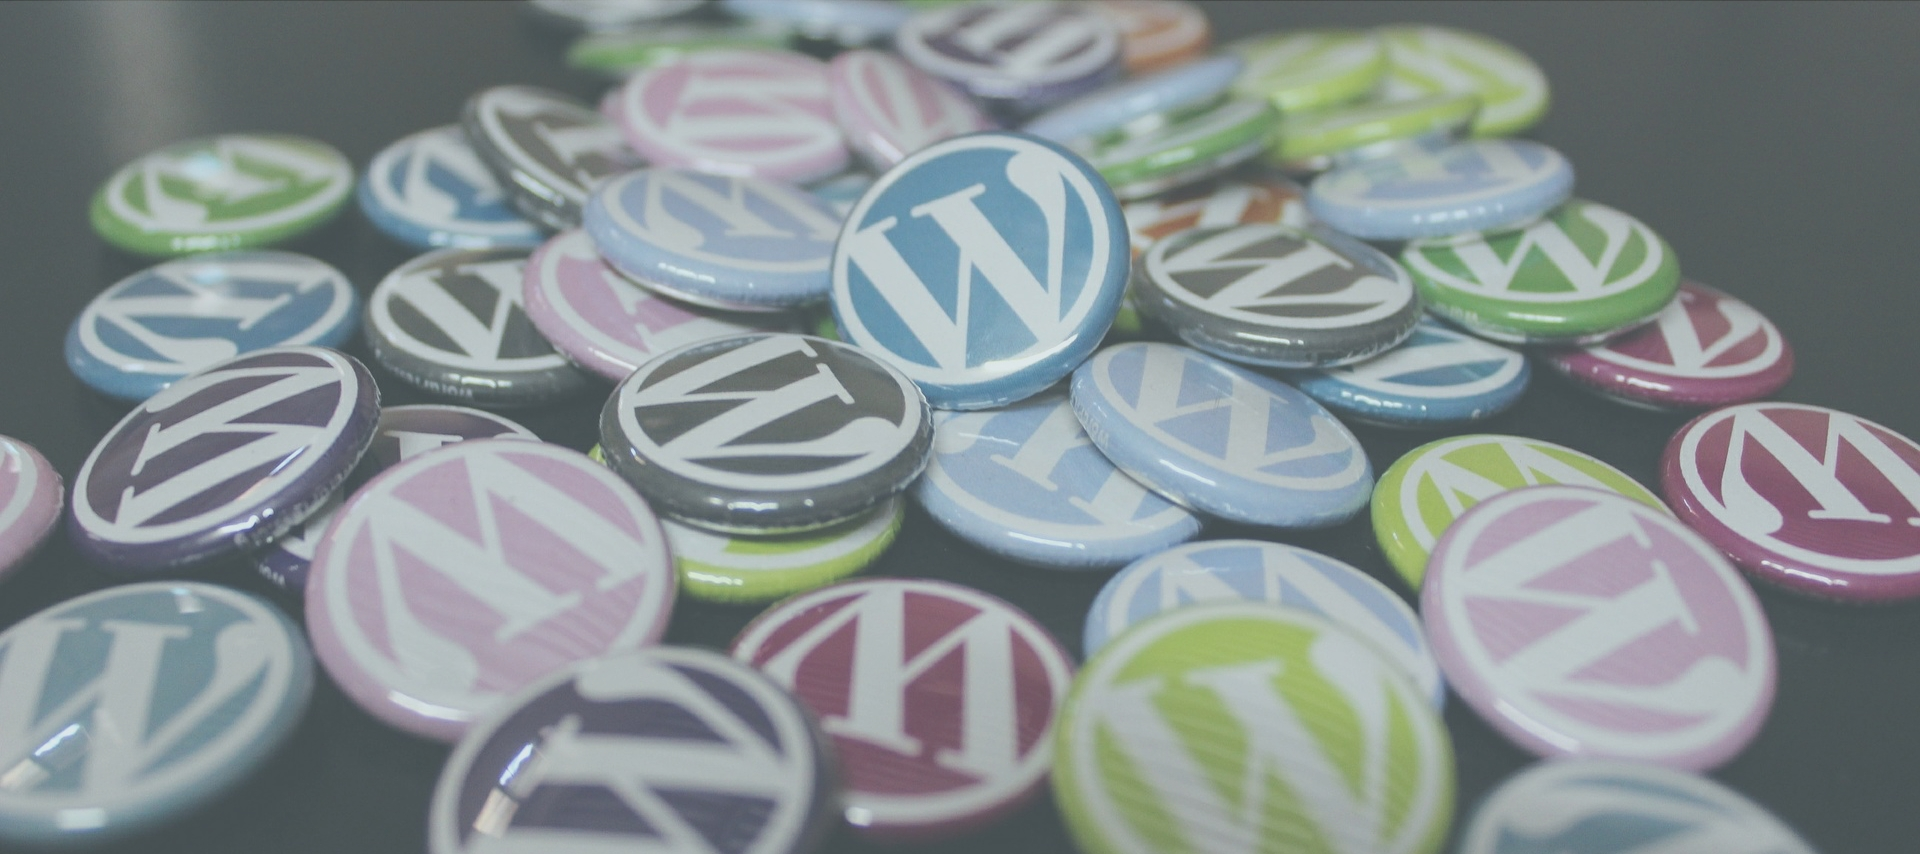 Best Free WordPress Themes to Use in 2020